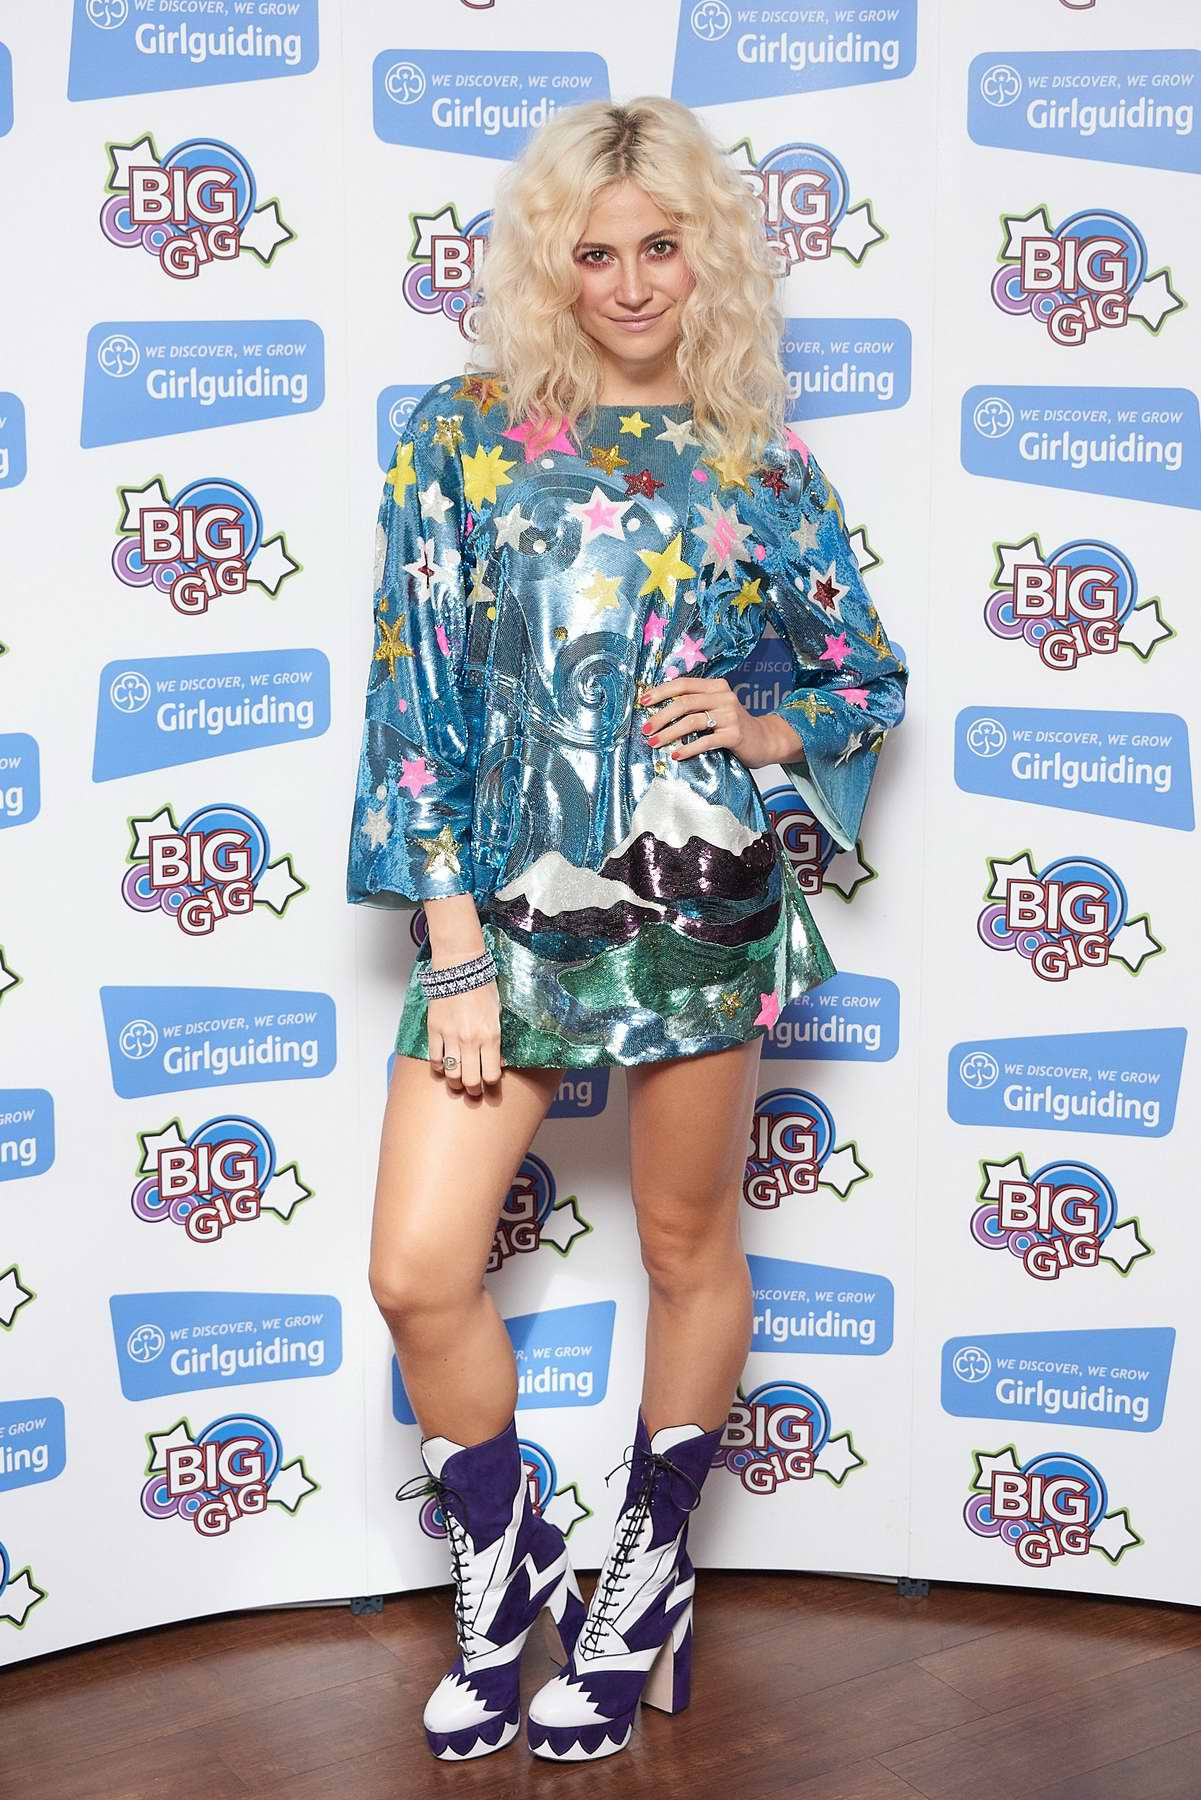 Pixie Lott at the Girl Guides Big Gig 2017 at the SSW Wembley Arena in London